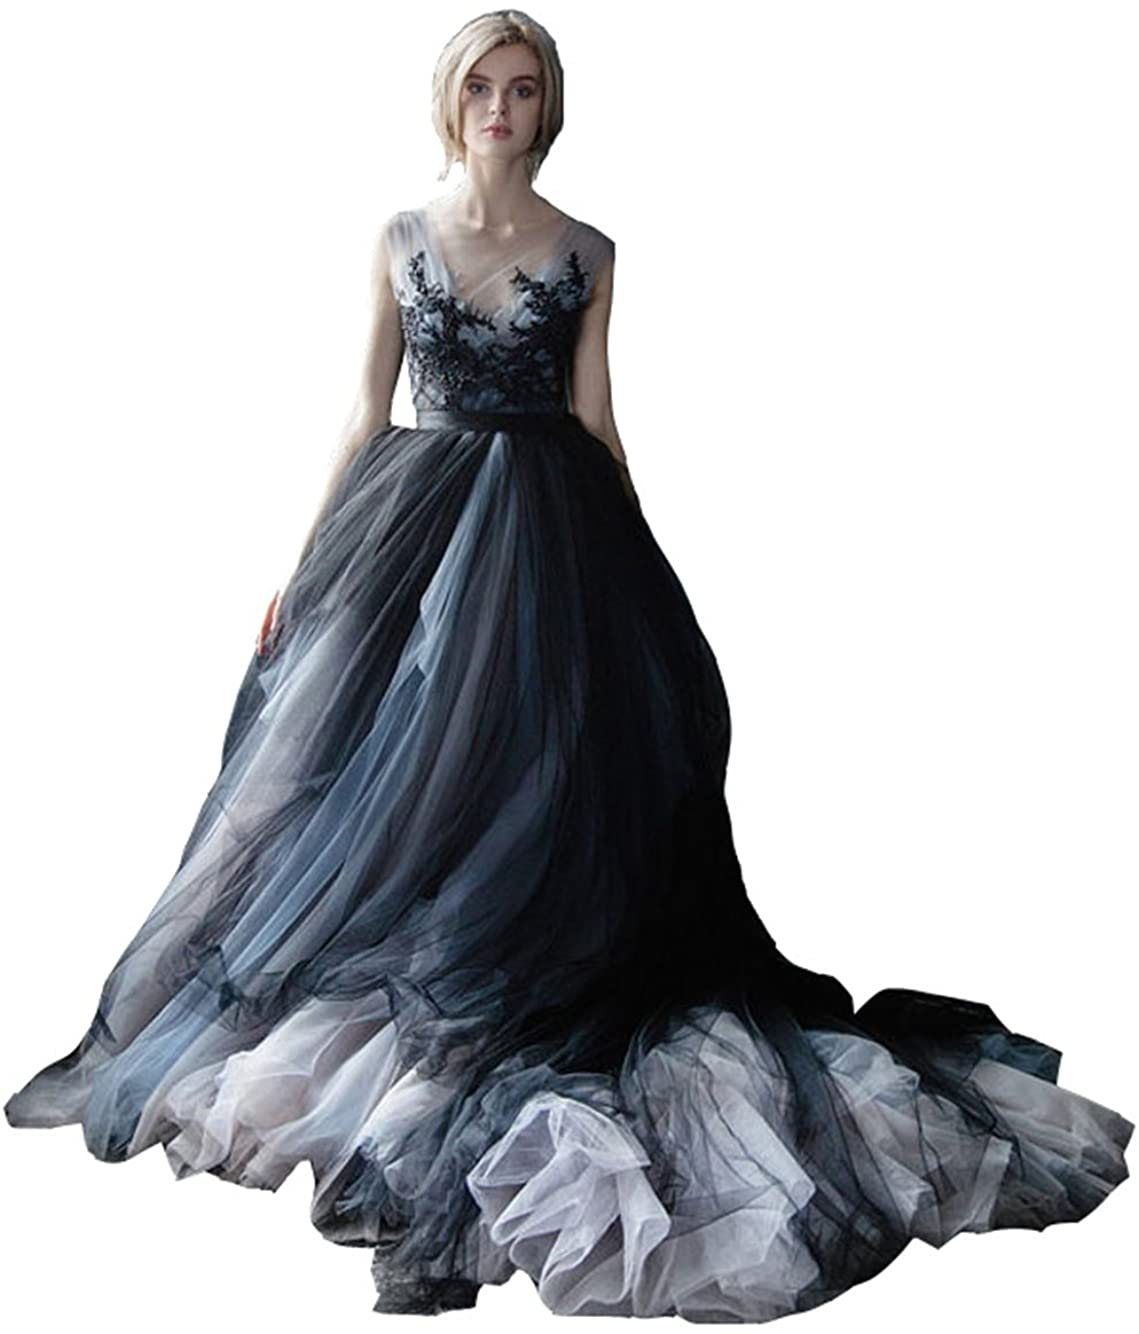 Lazacos Women's White and Black Tulle Lace Appliques Vintage Gothic Wedding Dress